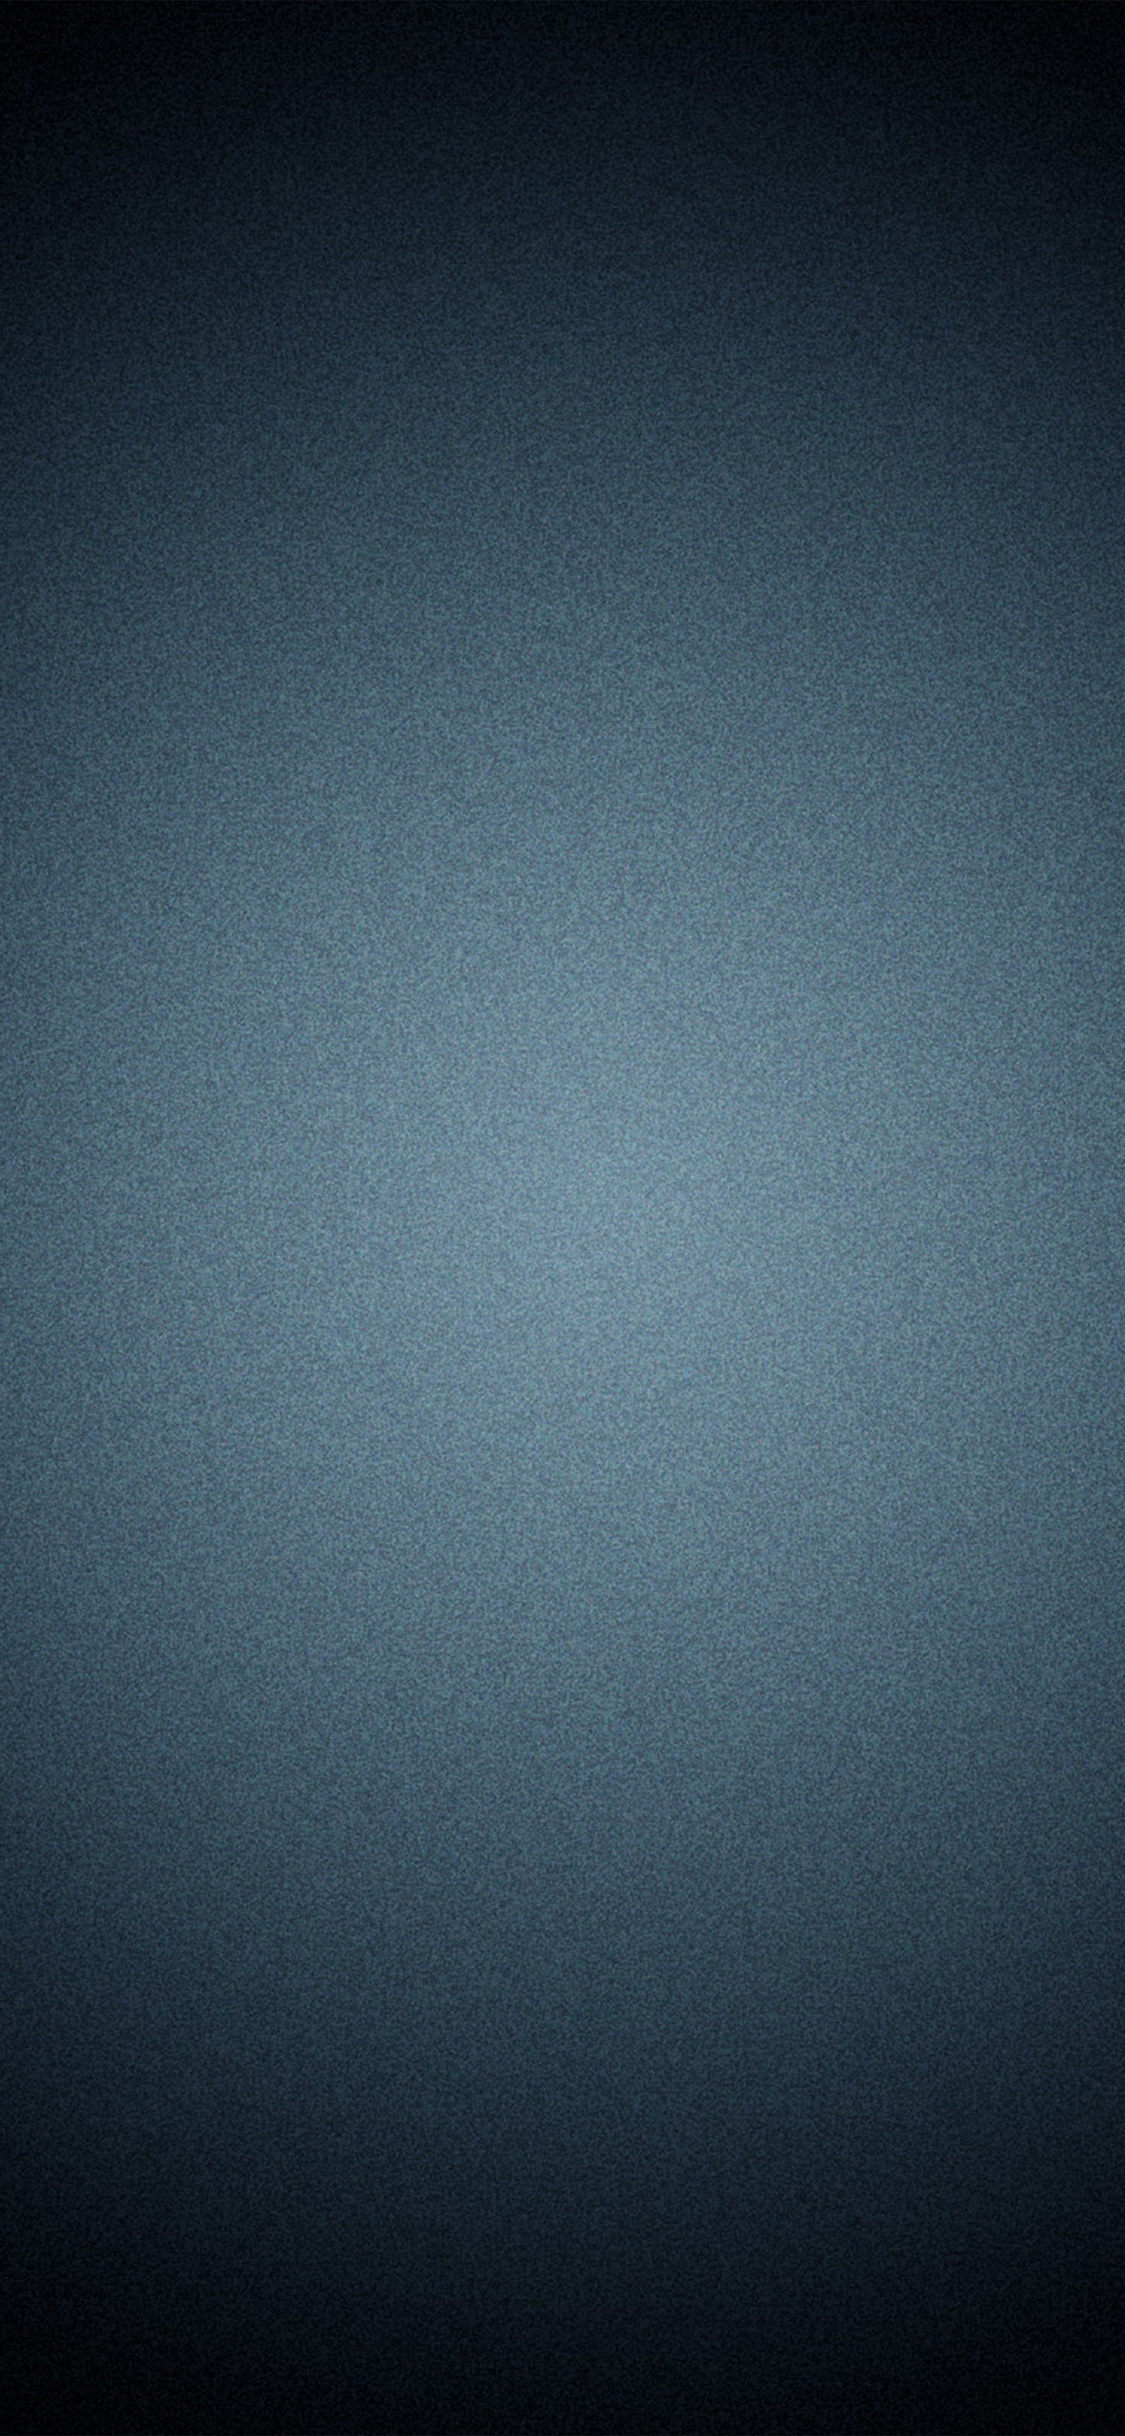 iPhoneXpapers.com-Apple-iPhone-wallpaper-vu85-circle-vignette-dark-blue-pattern